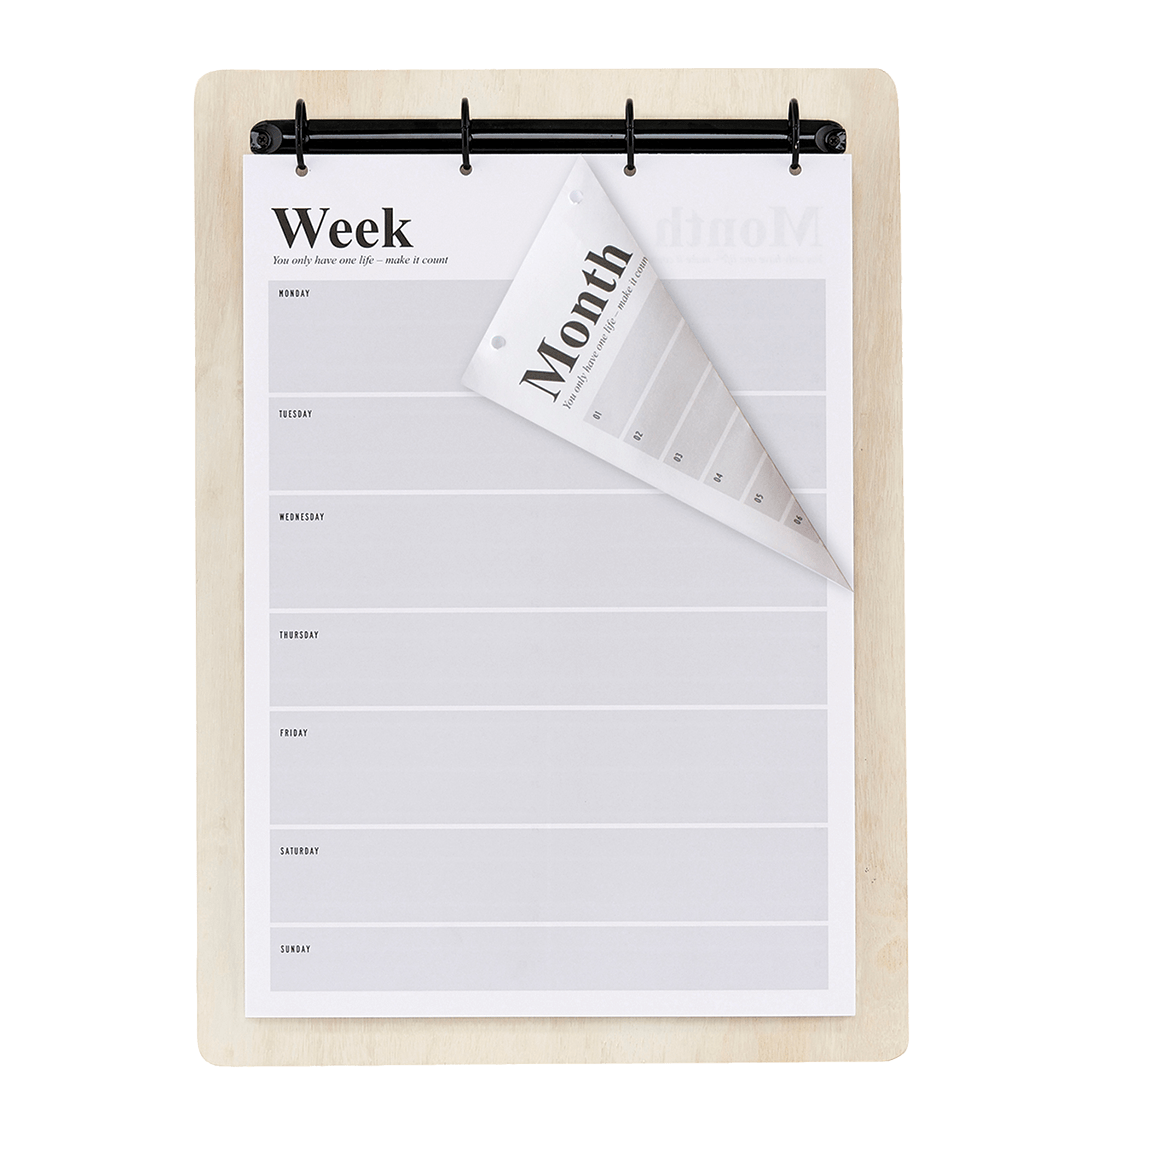 WEEKLY CALENDER - iDecorate